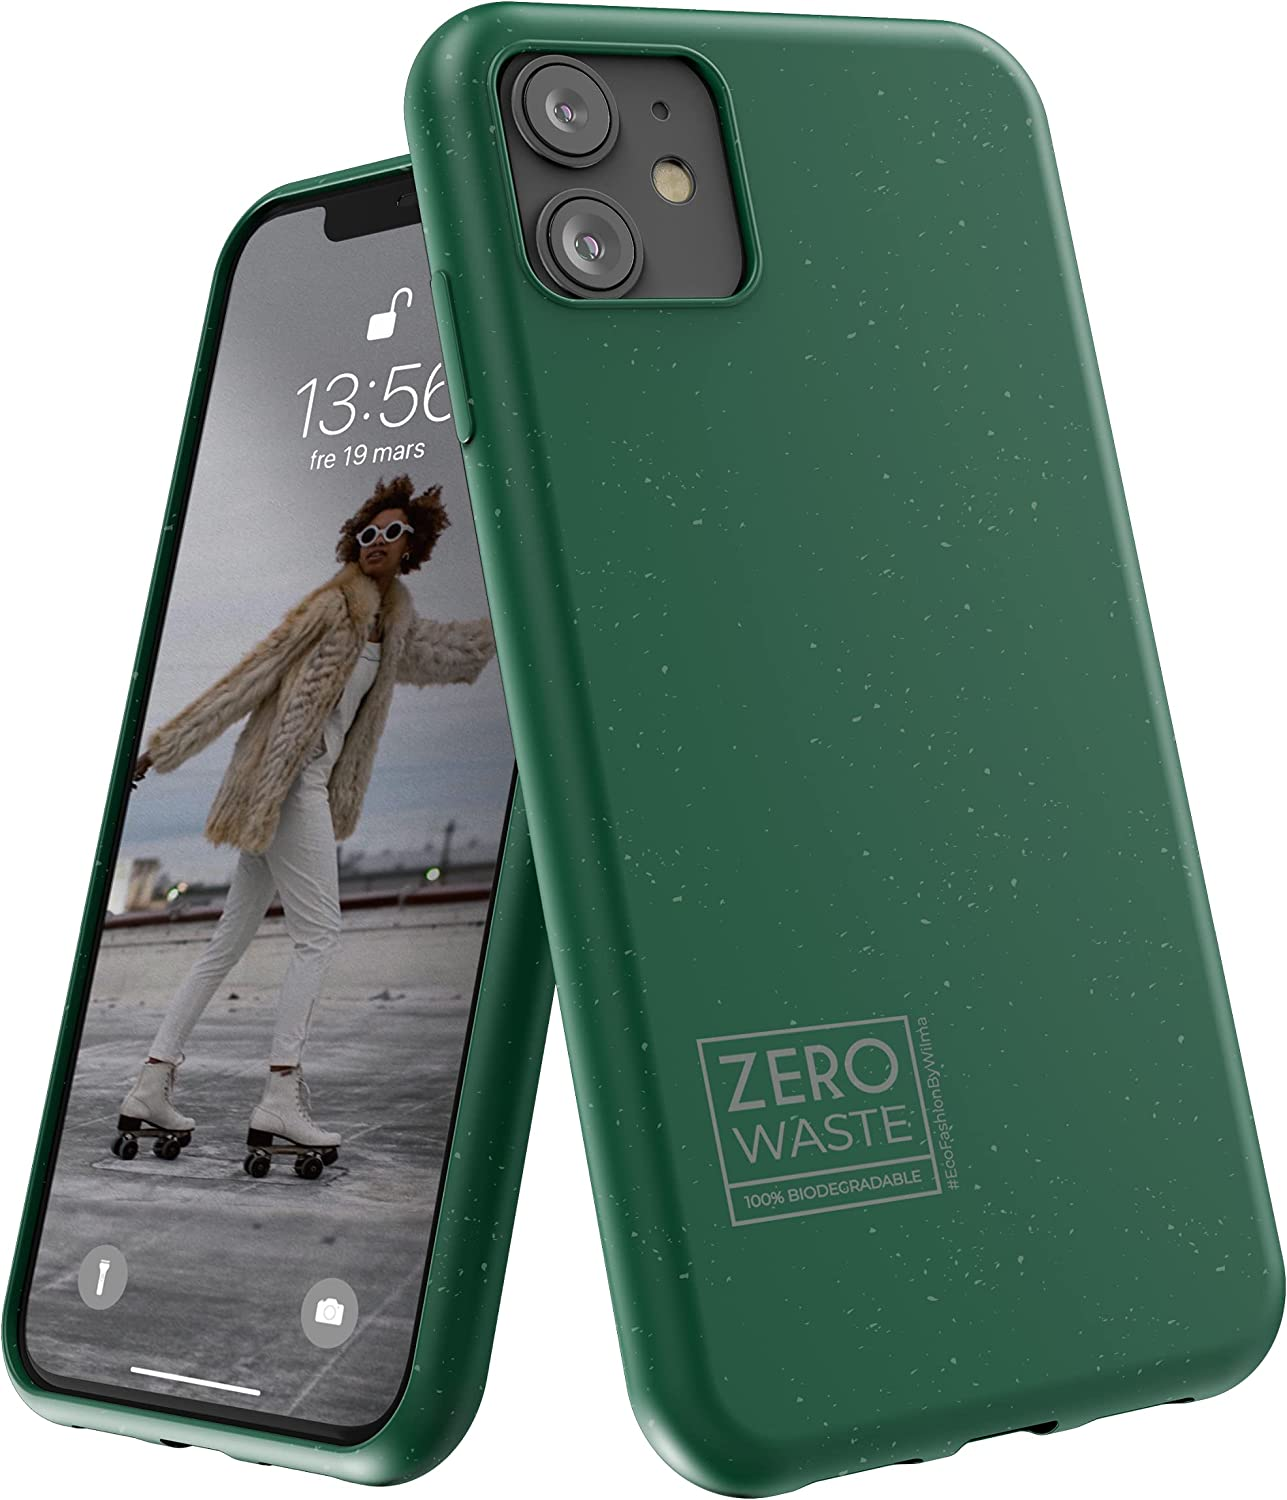 Wilma Biodegradable Compatible with iPhone 11 Case, Zero Waste, Shockproof Protective Phone Cover, Eco Friendly, Stop Plastic Pollution, Plastic Free Case, Green